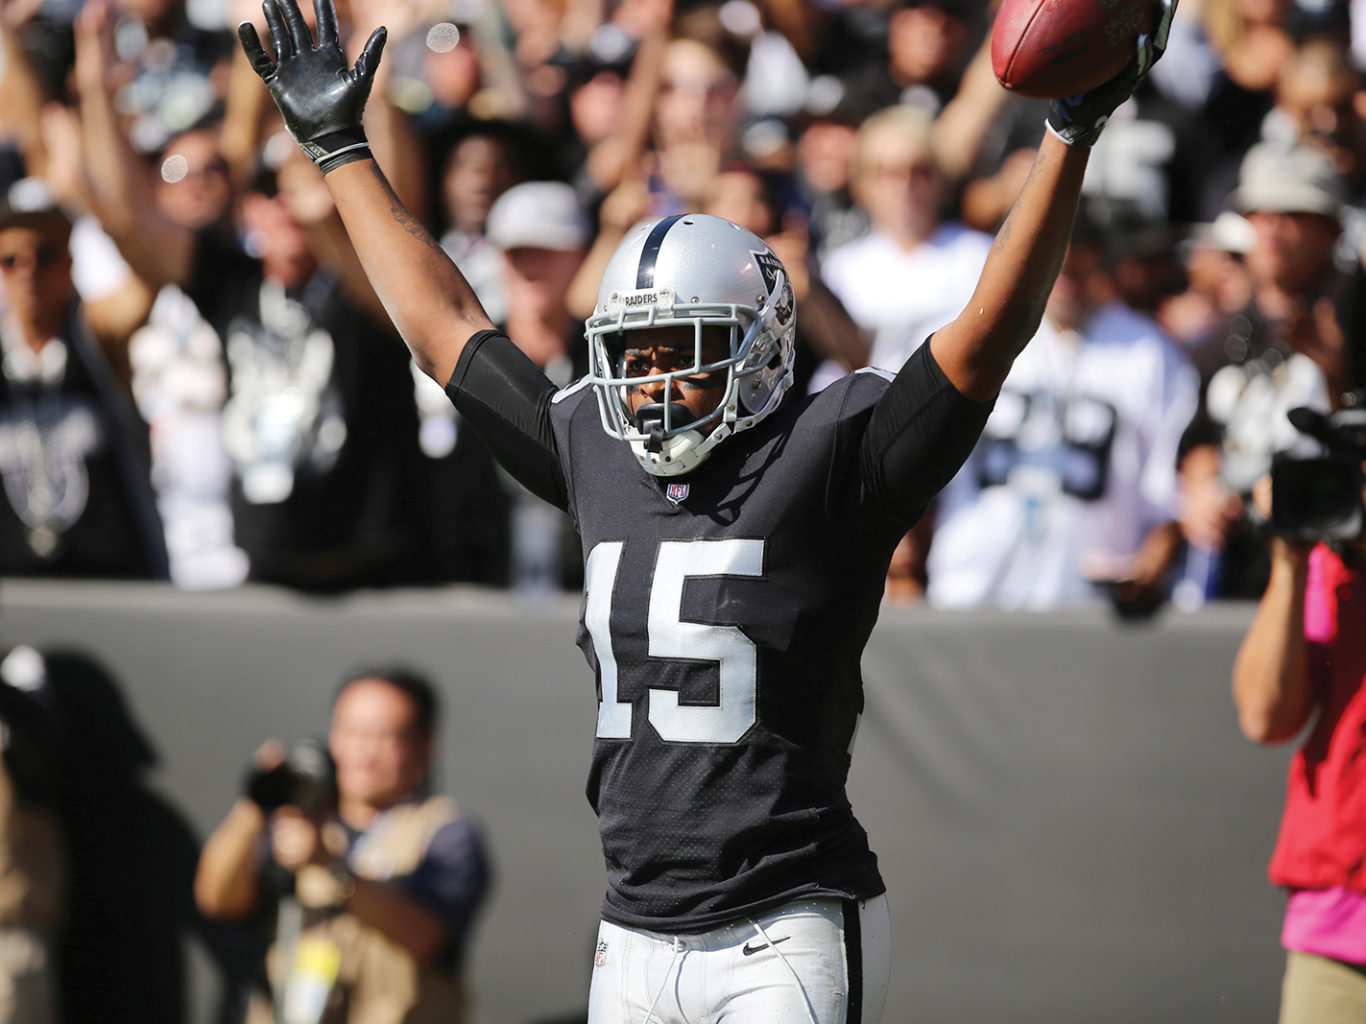 Michael Crabtree will only miss one more game after the NFL accepted his appeal on Tuesday. (Mira Laing/Special to S.F. Examiner)